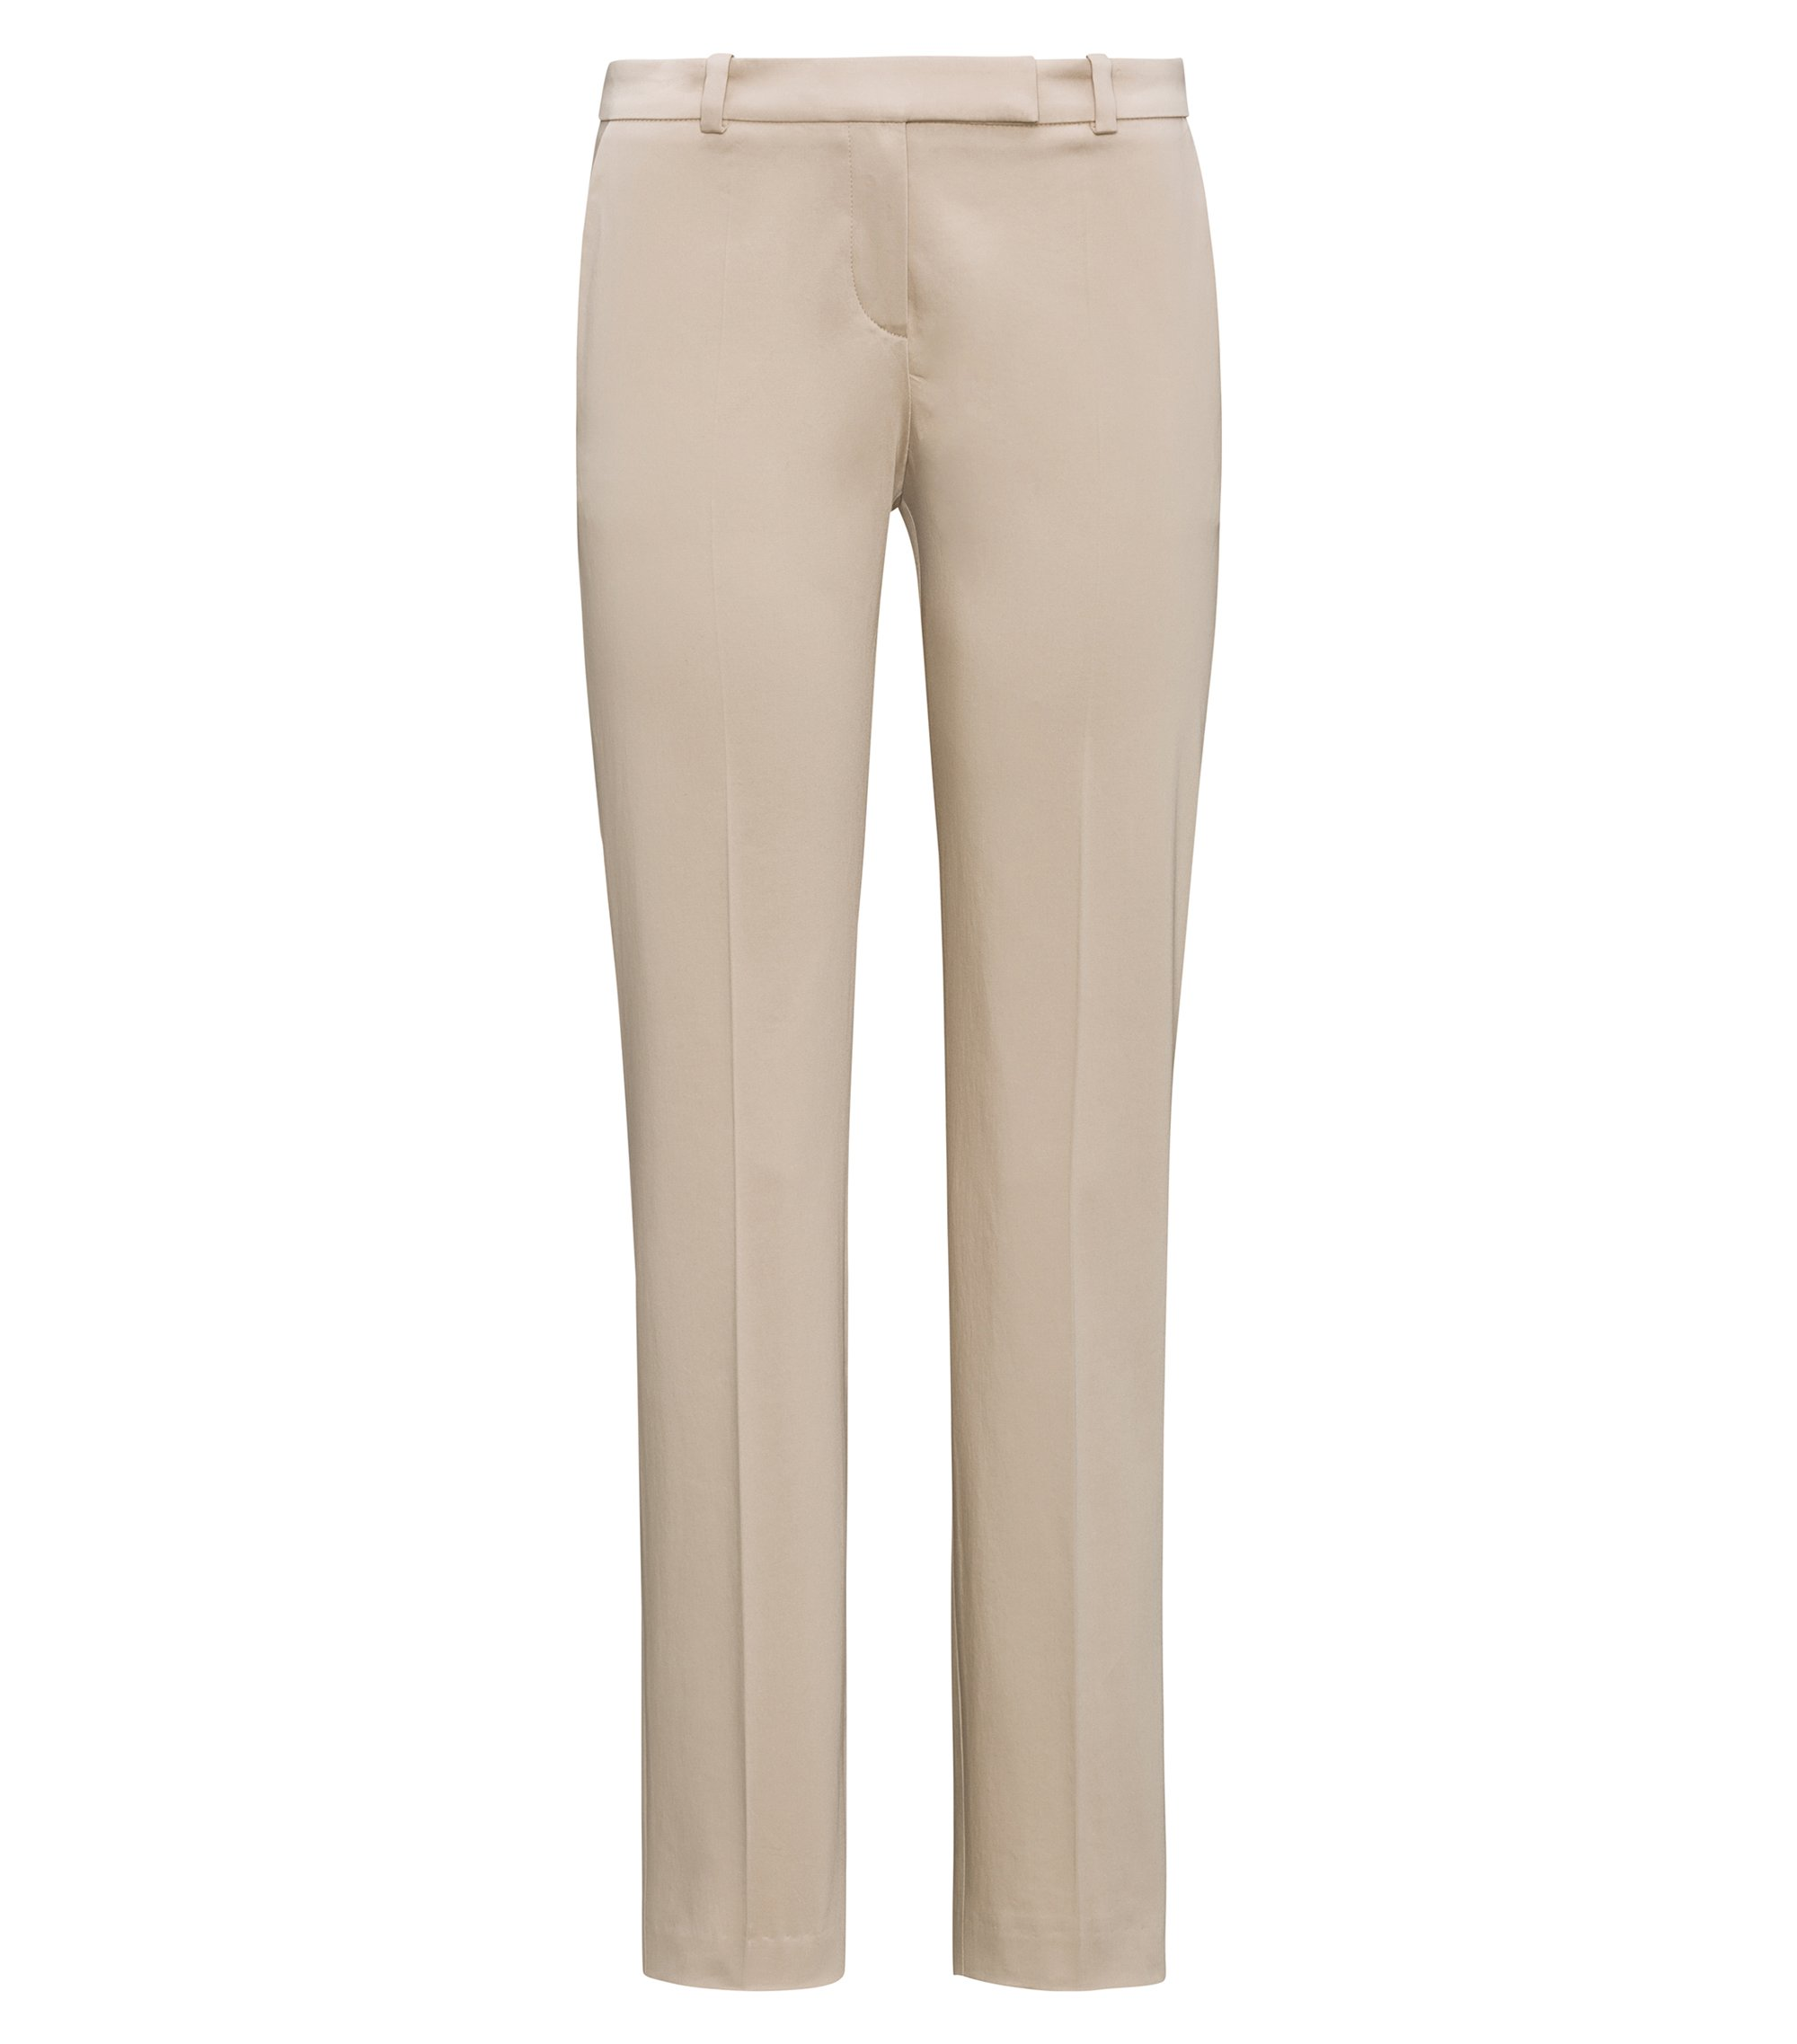 Pantalon Regular Fit en coton stretch, Beige